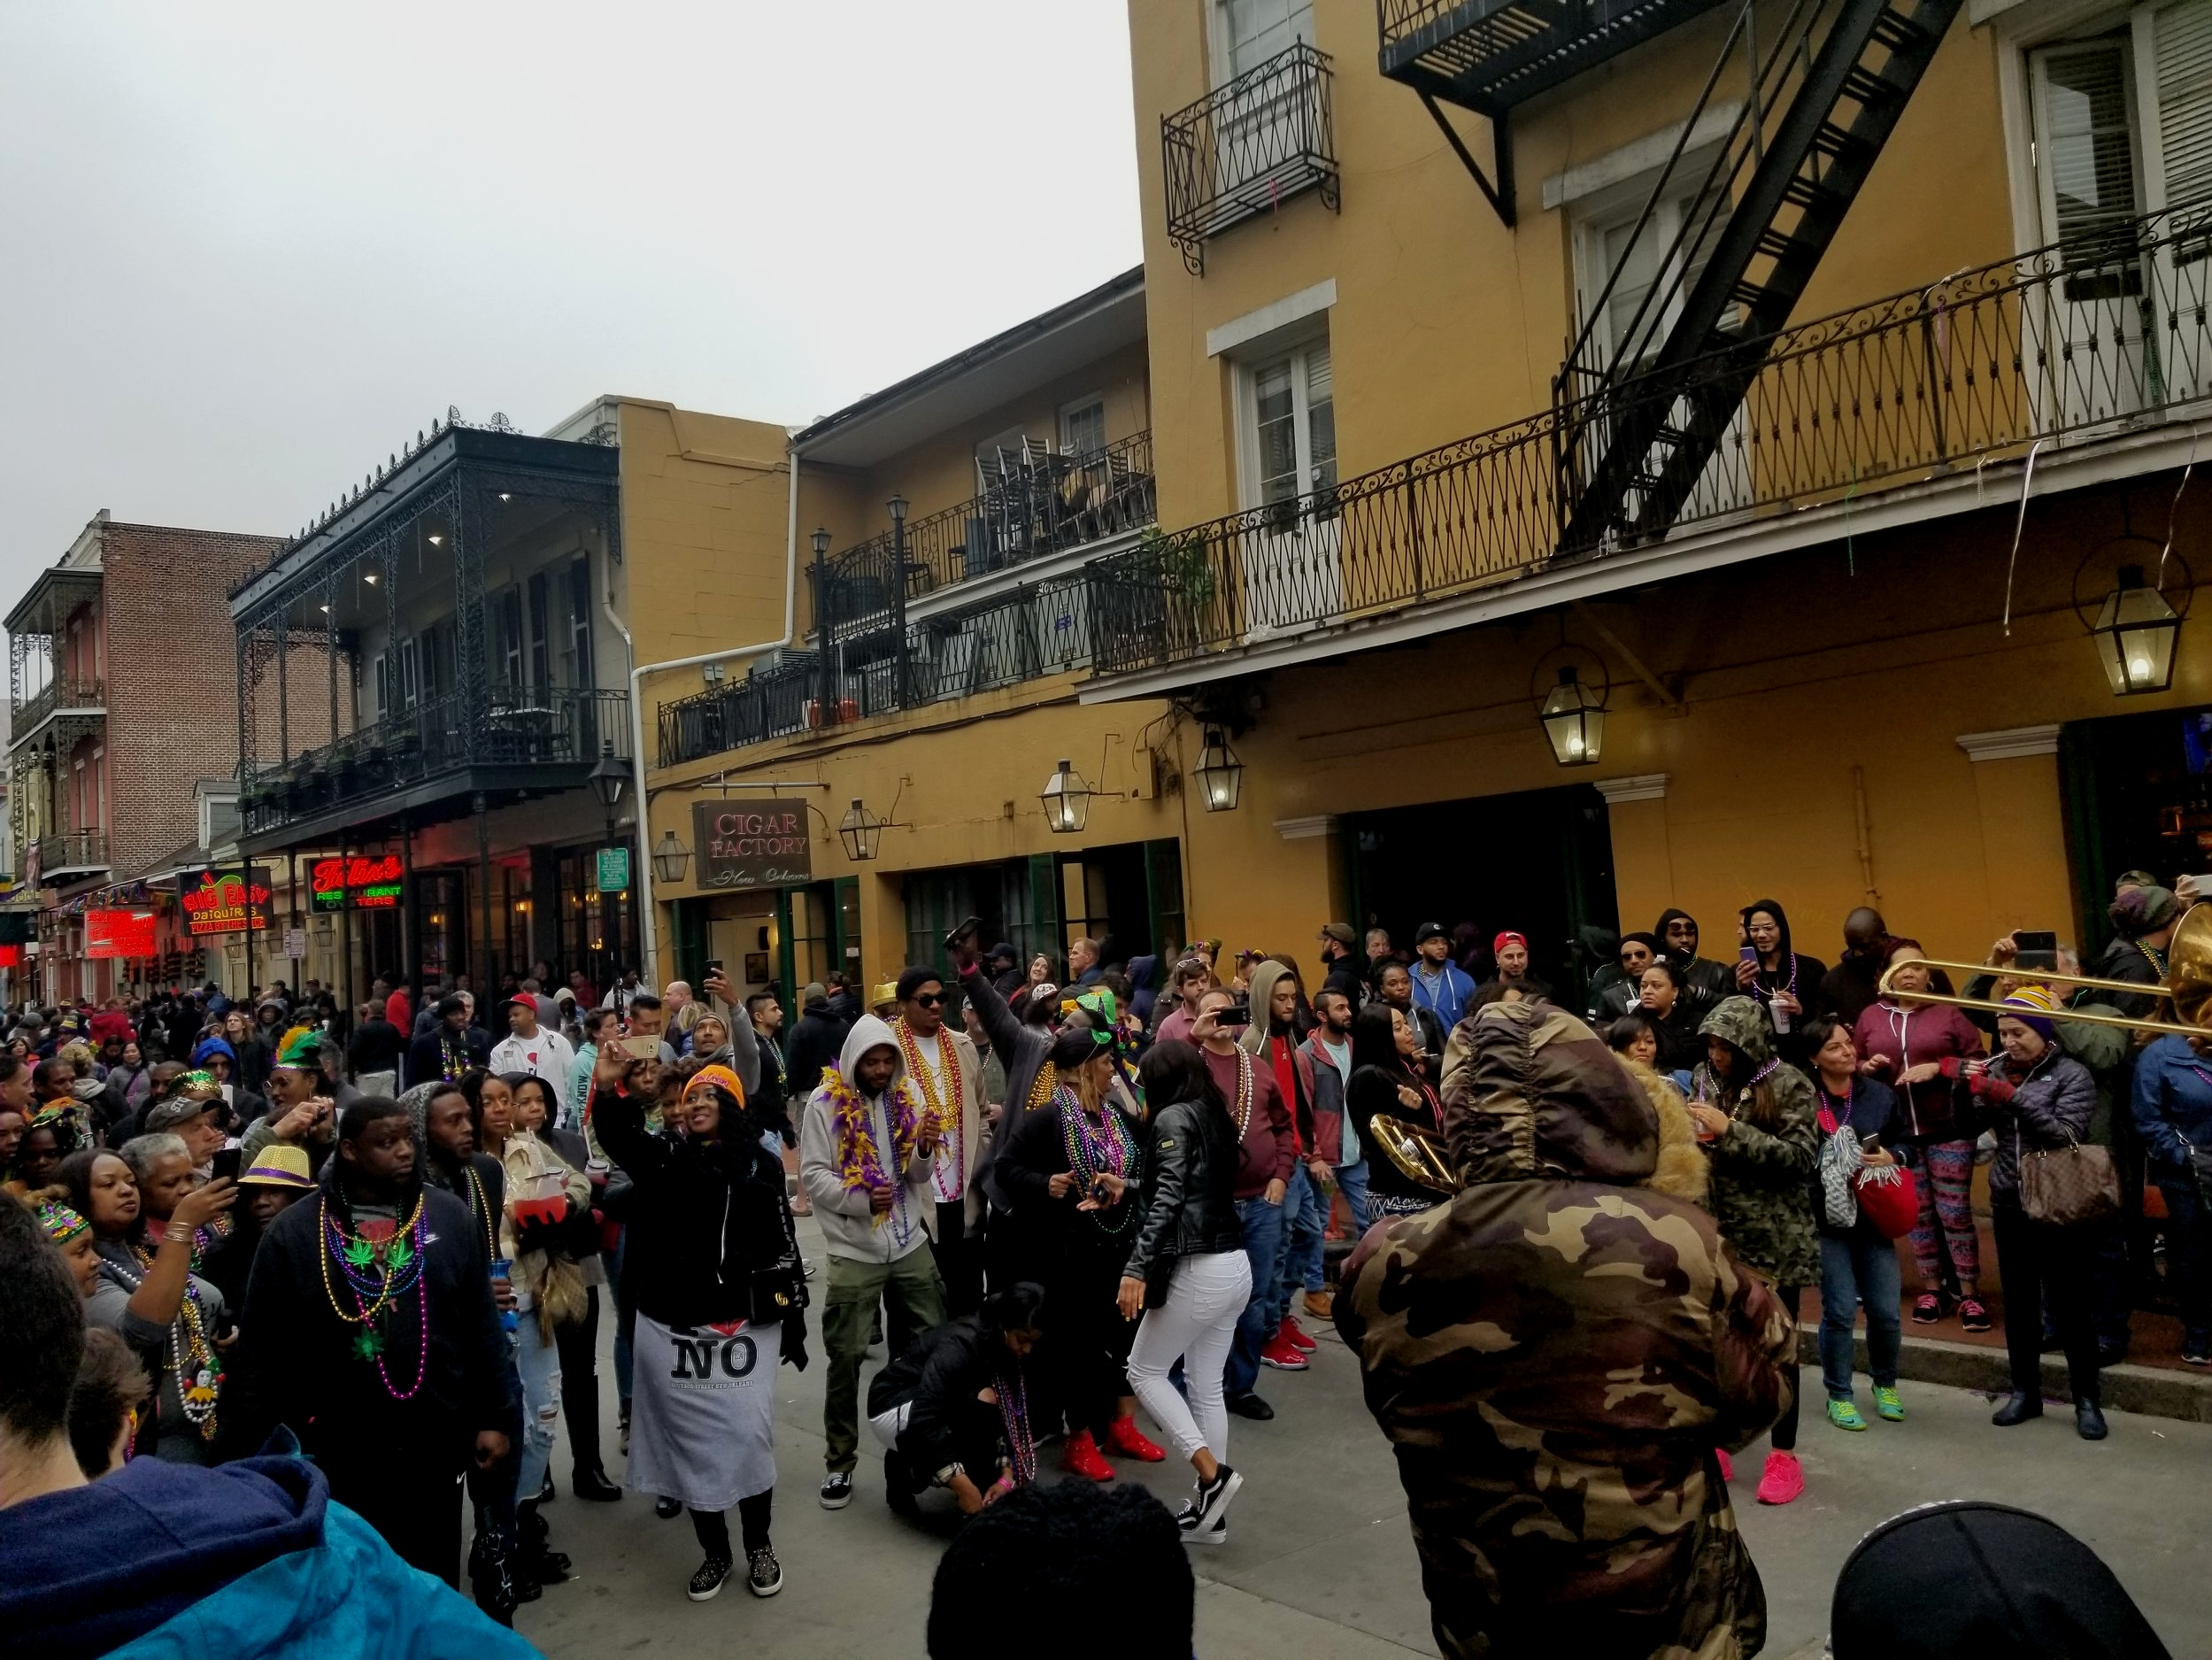 The French Quarter (especially Bourbon Street) gets a lot of attention during Mardi Gras, but it's far from the only place to enjoy this grand celebration.